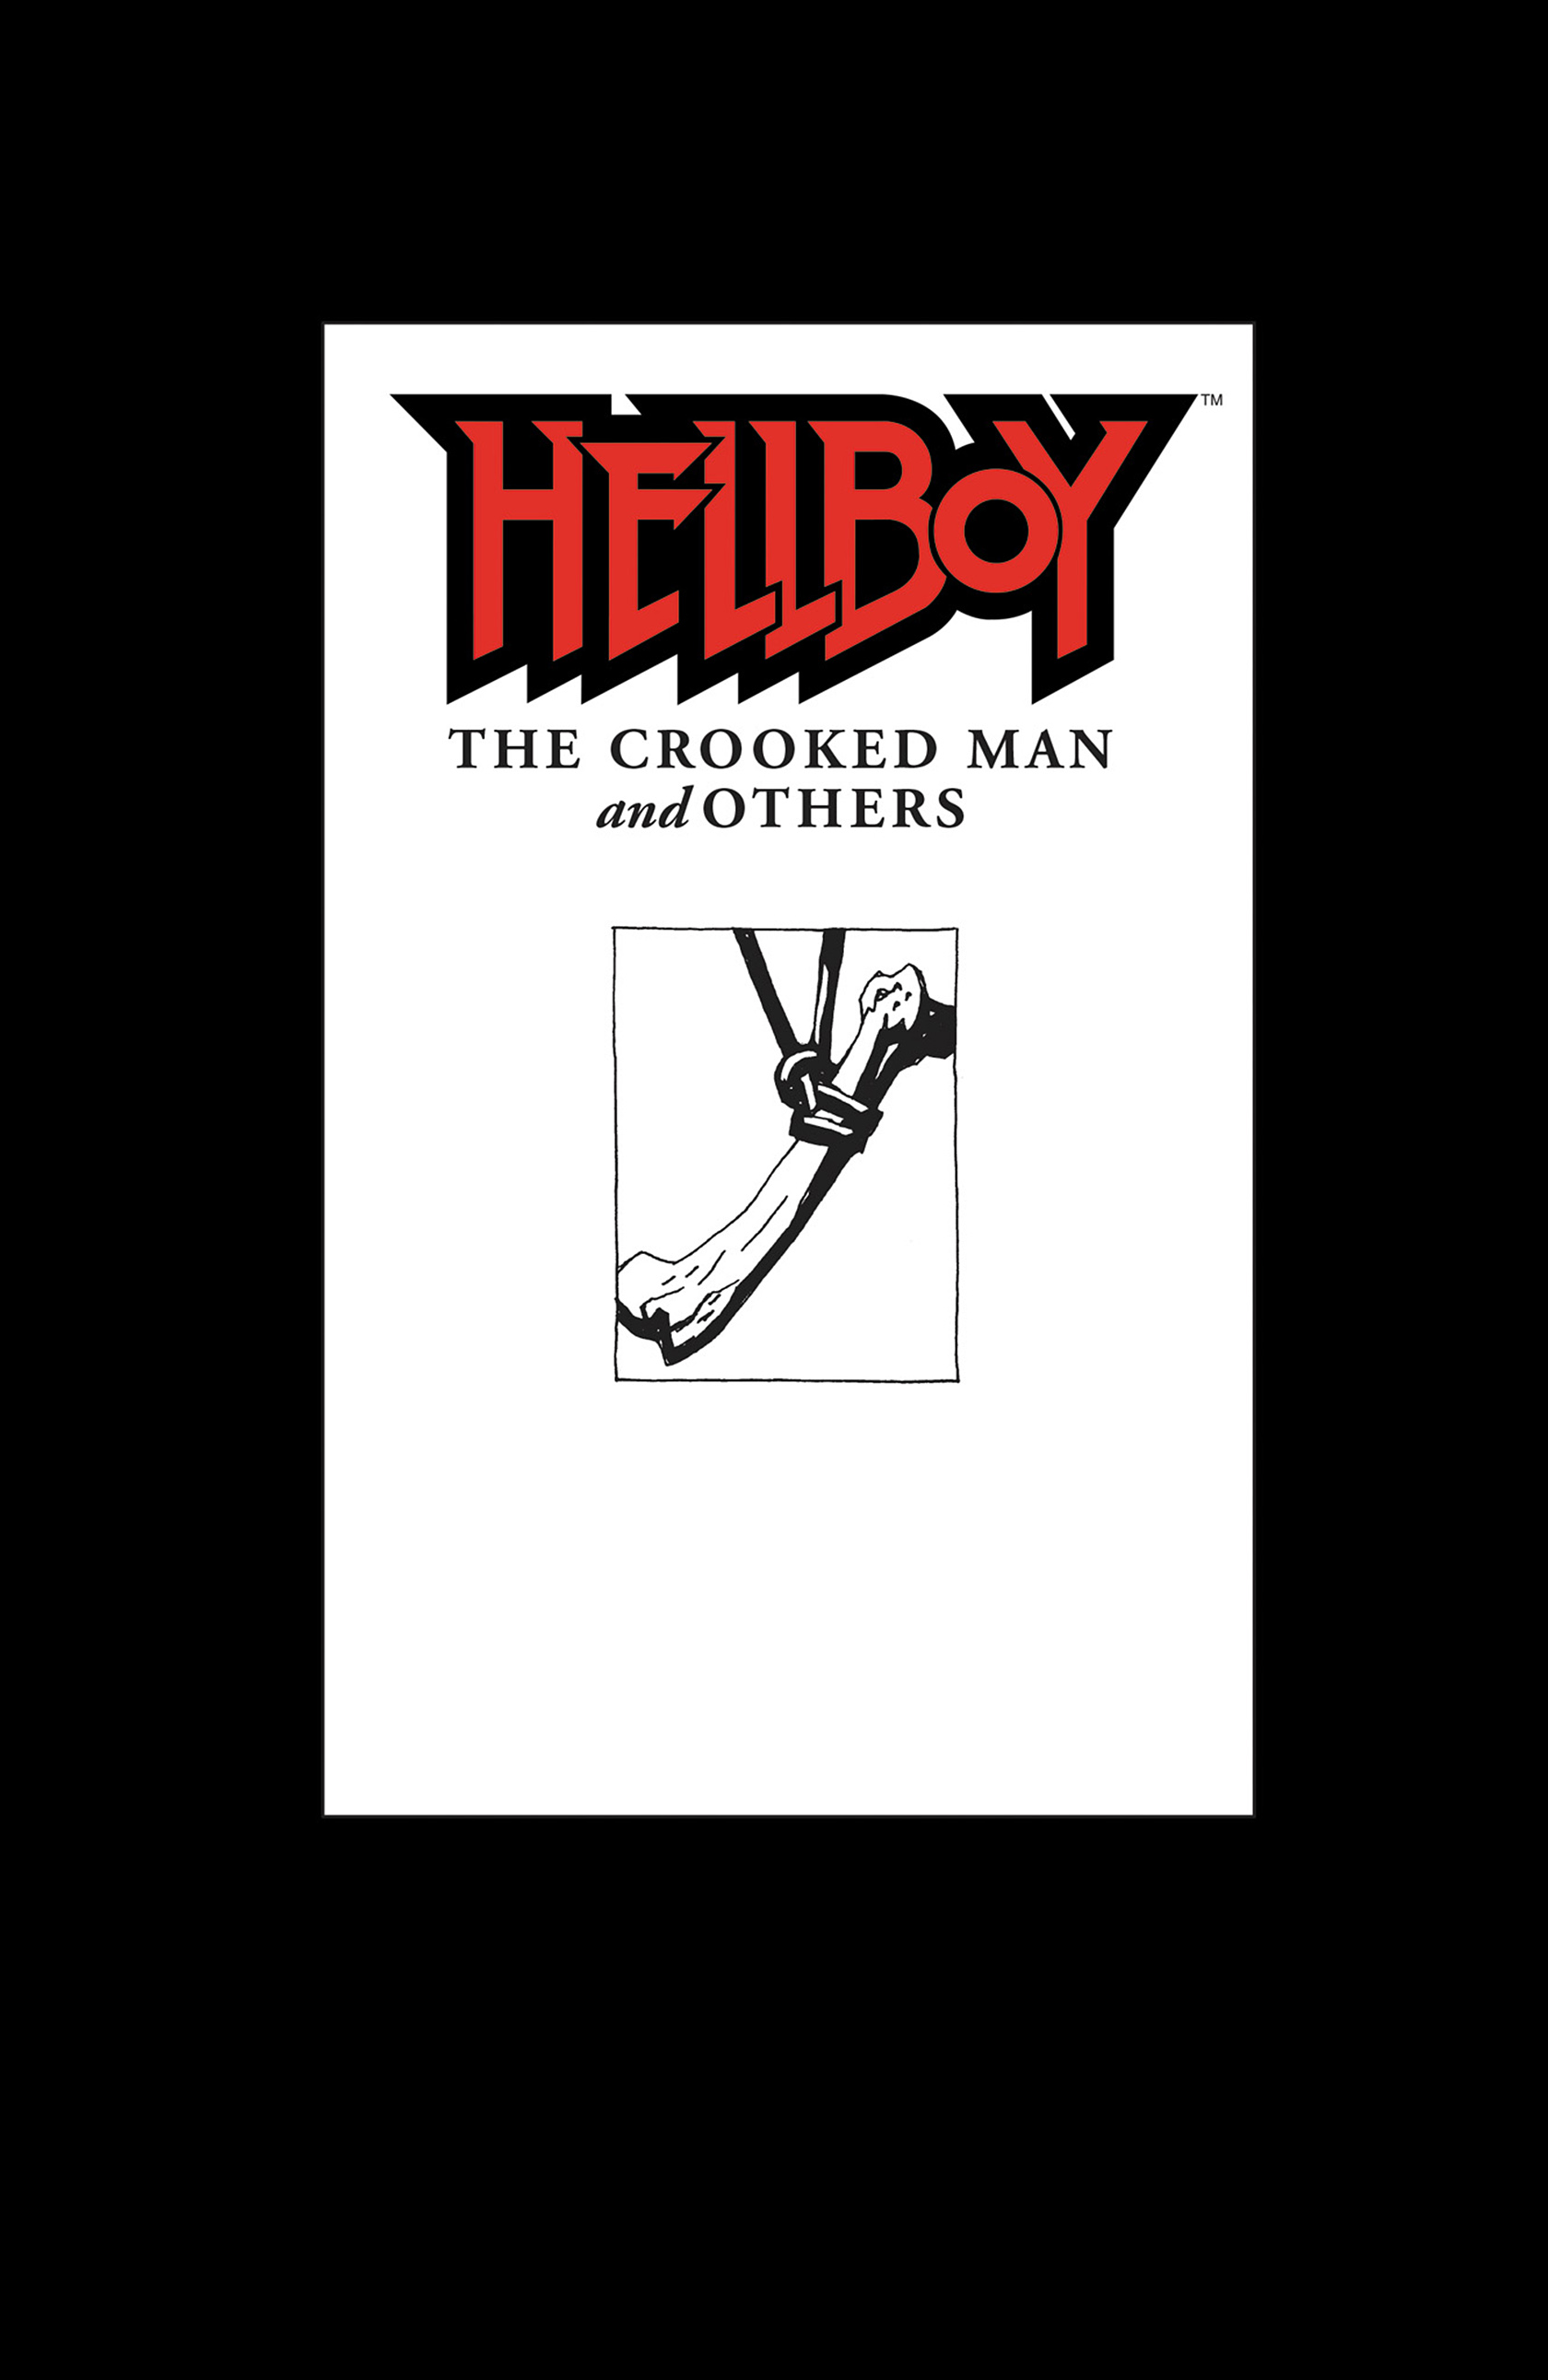 Read online Hellboy: The Crooked Man and Others comic -  Issue # TPB - 2